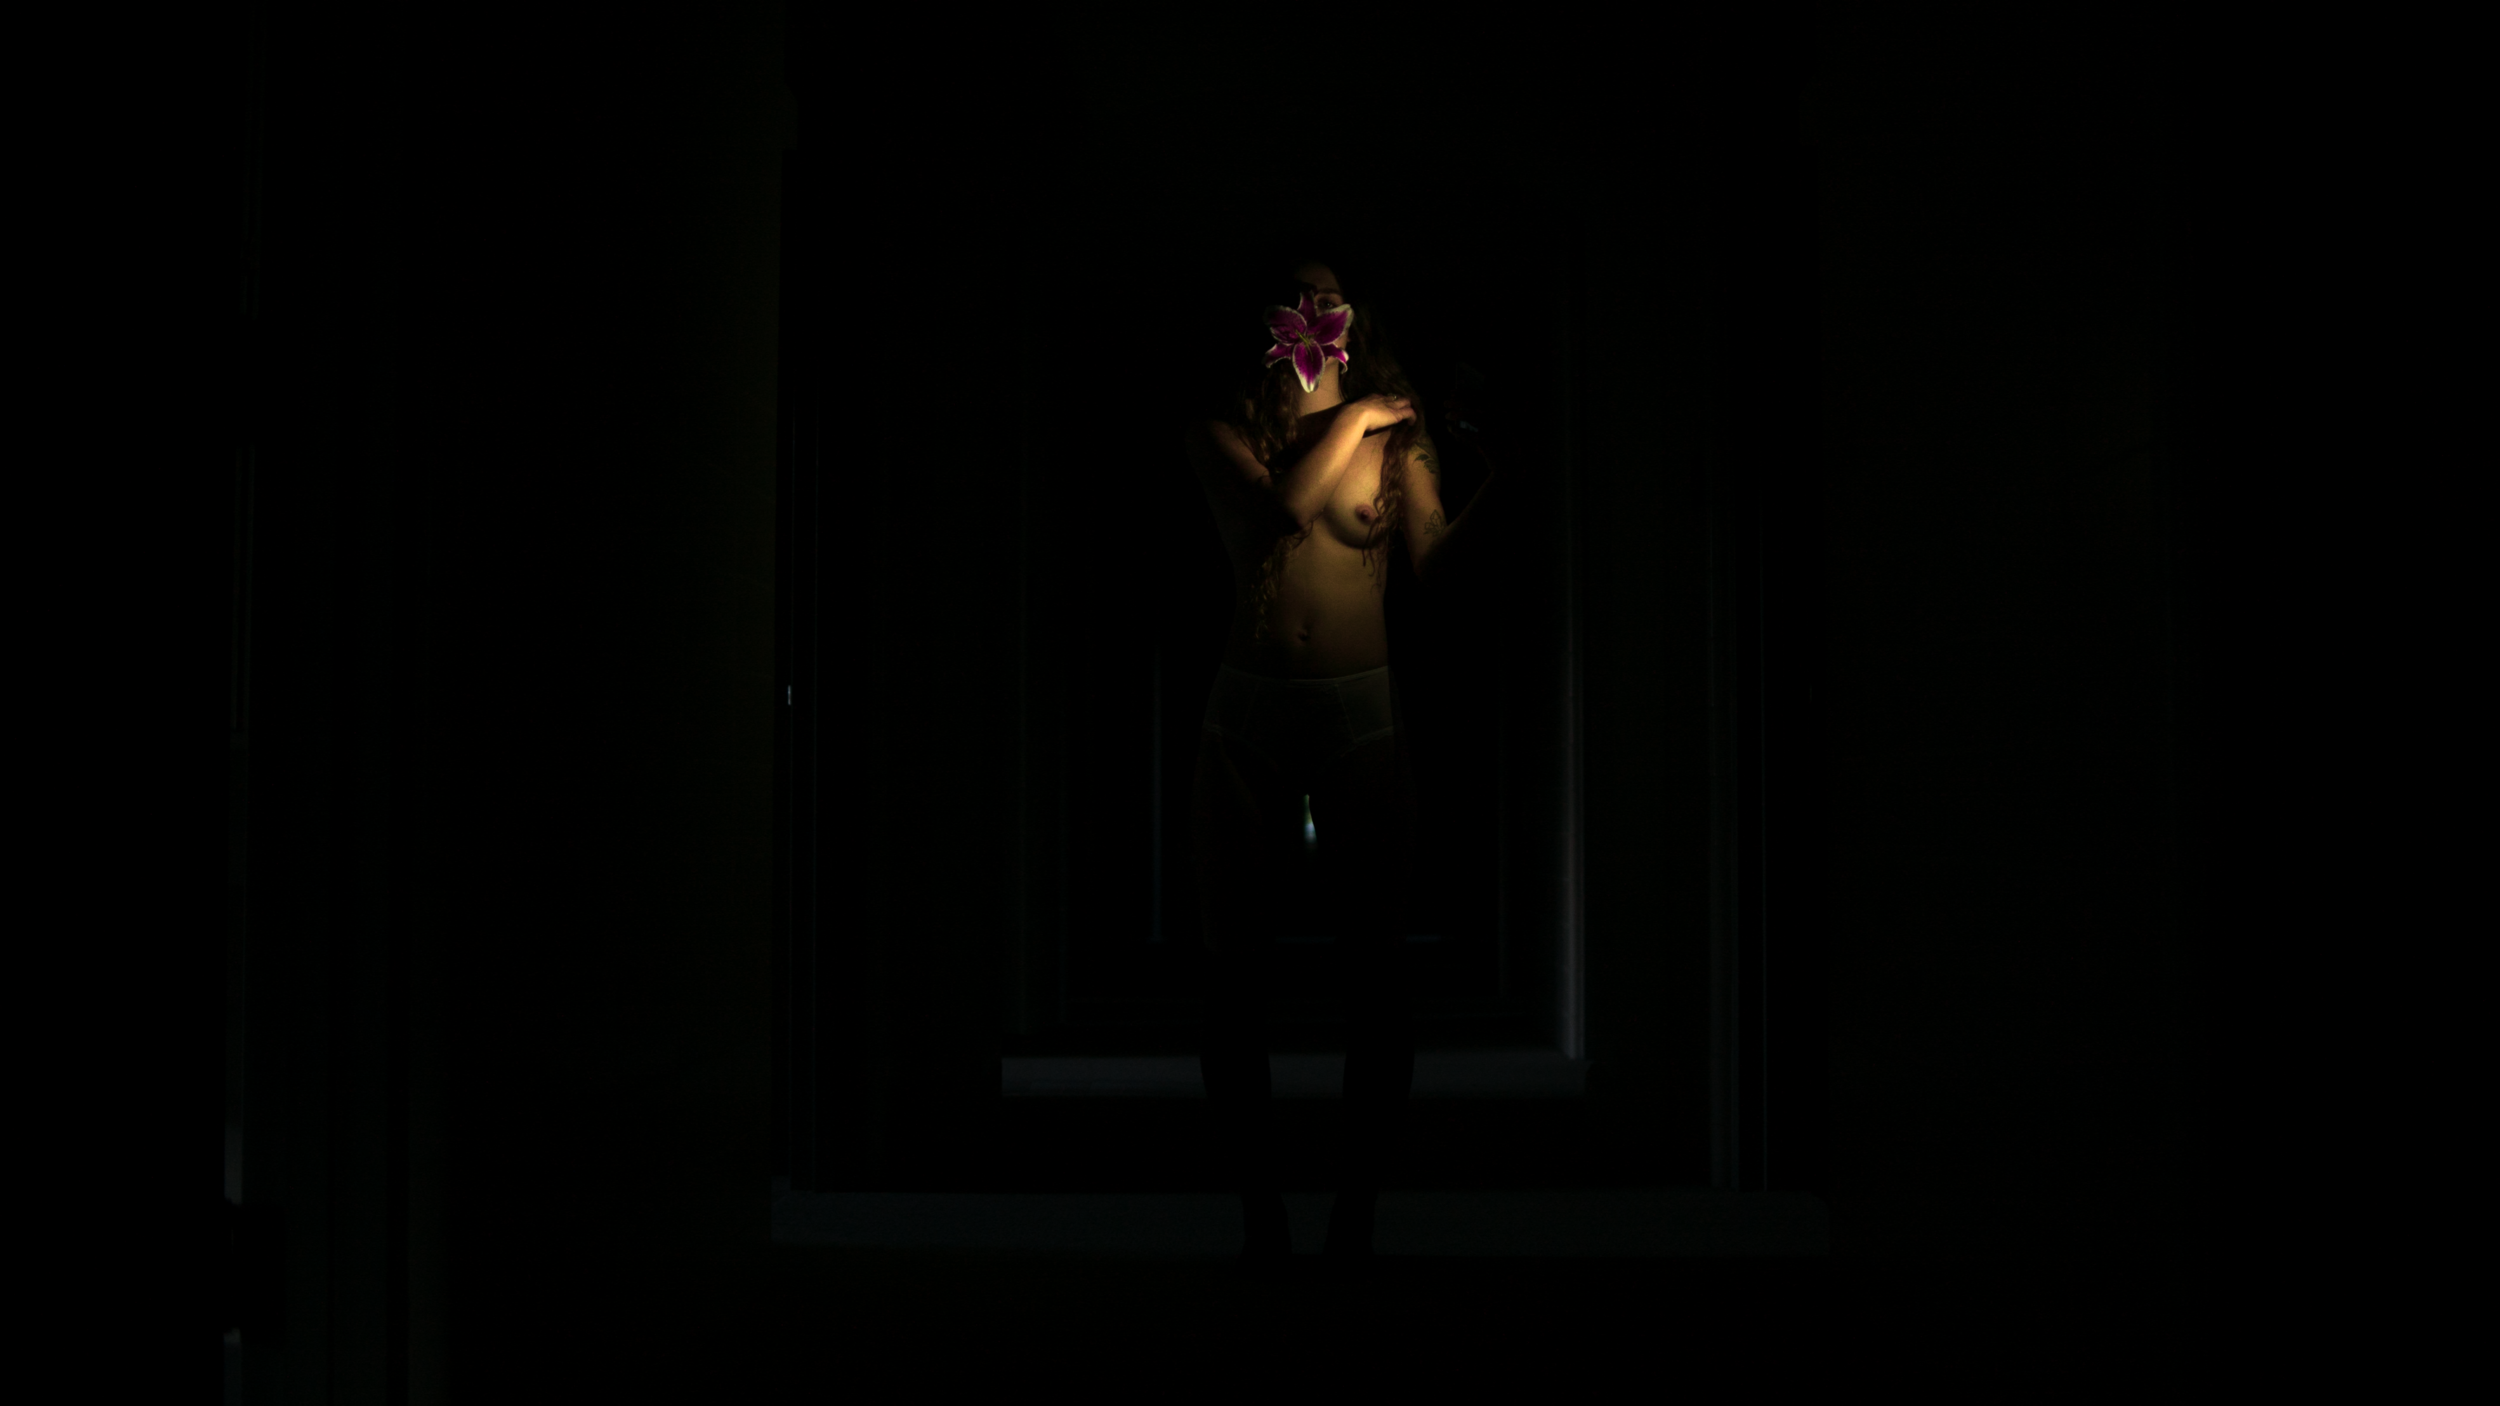 A girl stands topless in a dark hallway, an oriental lily blossom in her mouth.